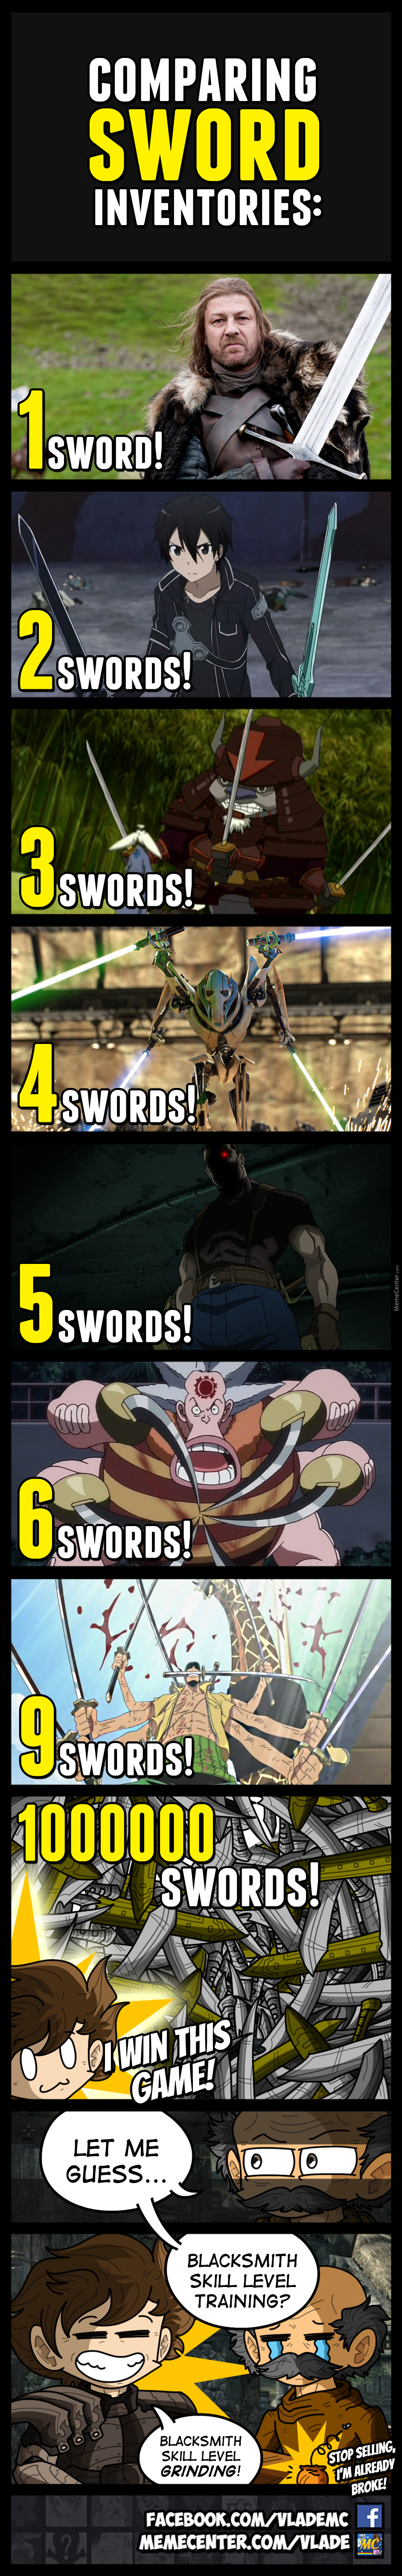 Who Can Carry The Most Swords?